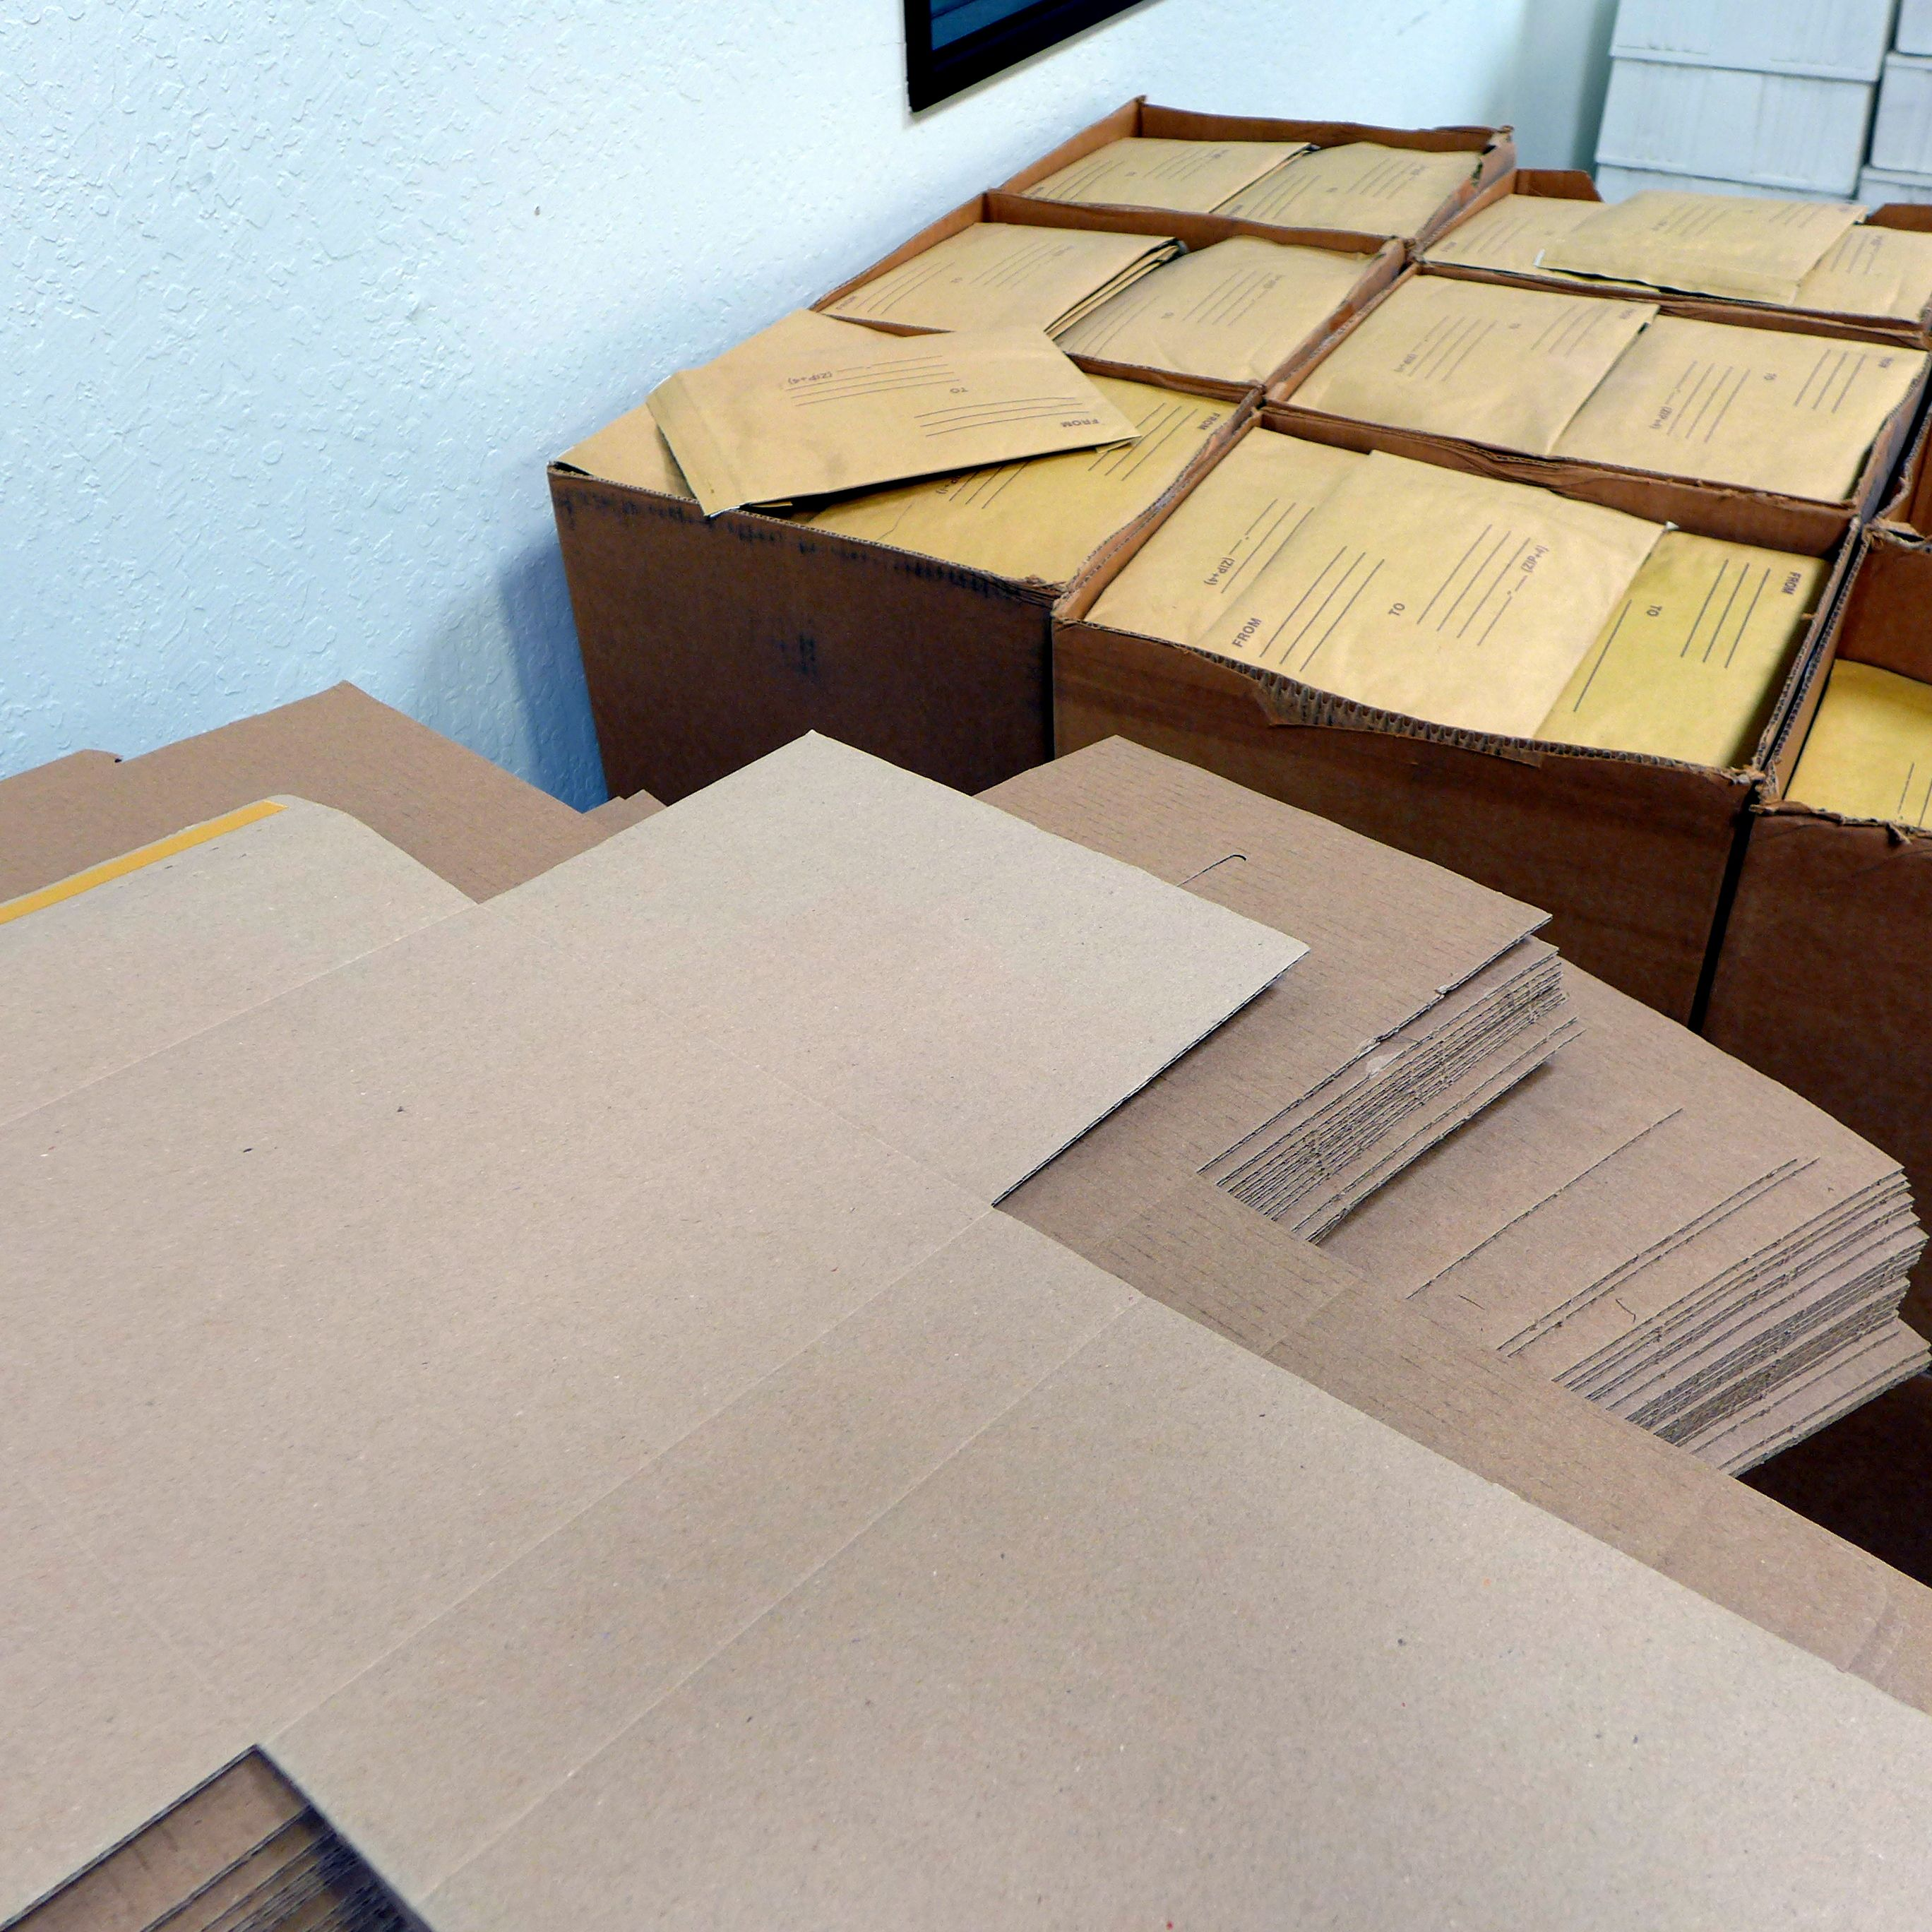 Assorted boxes and envelopes